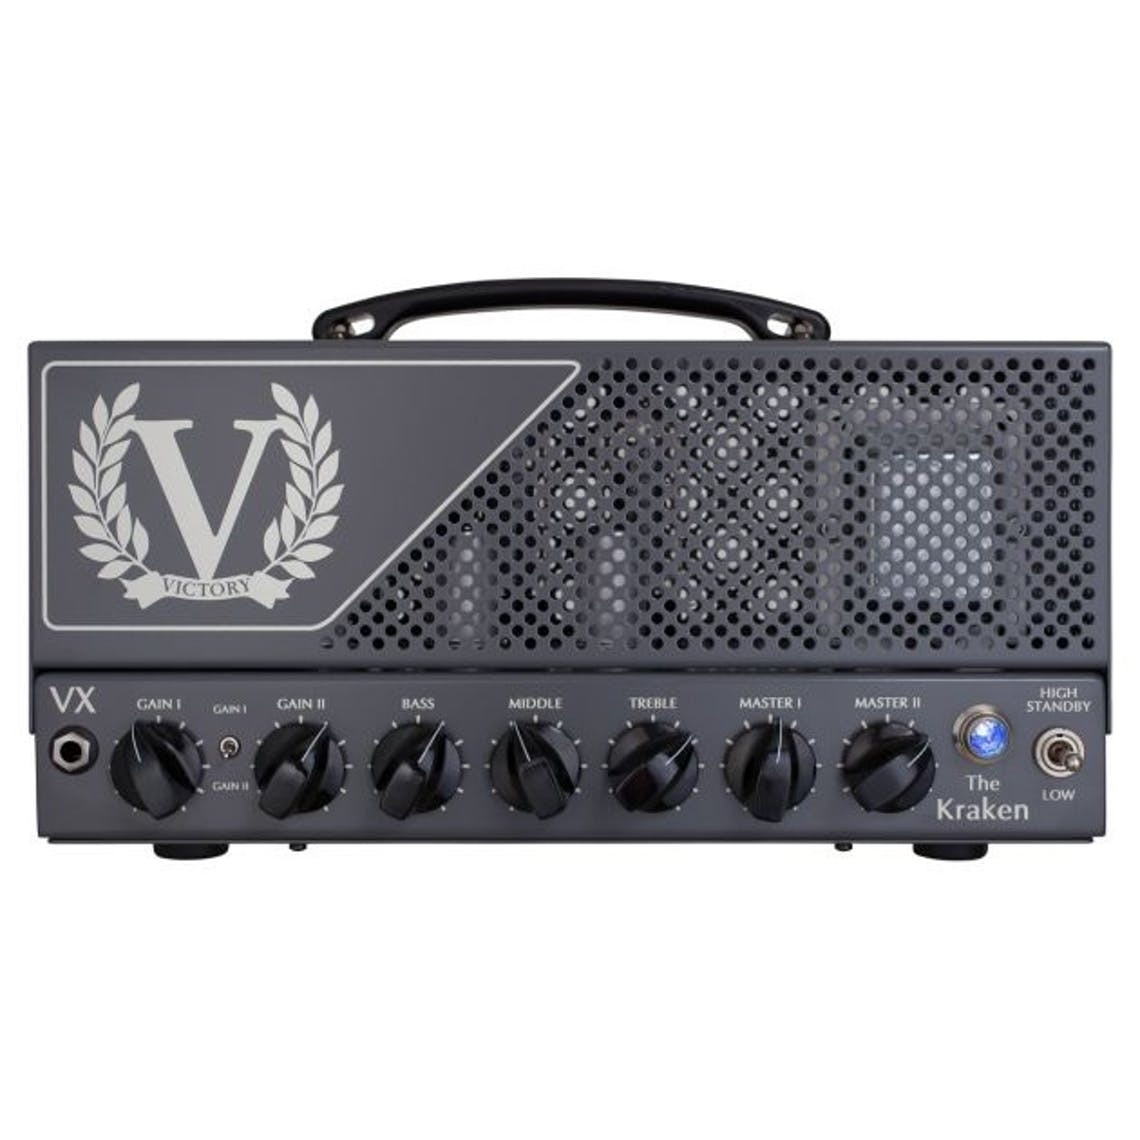 VICTORY VX THE KRAKEN 50W HEAD